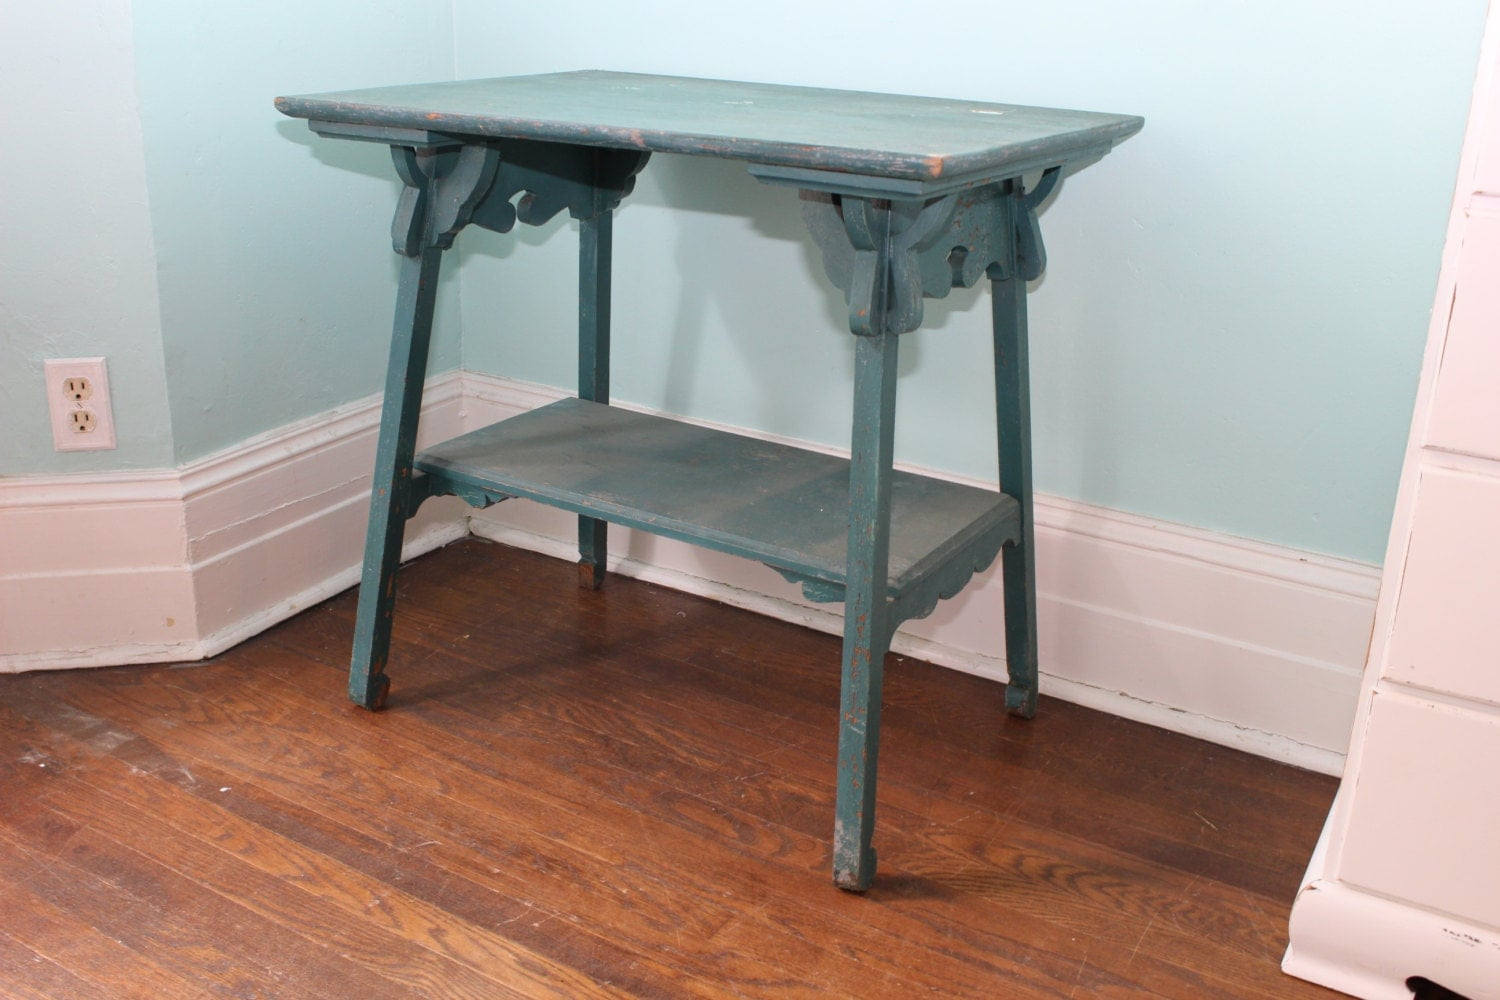 Table shabby chic teal turquoise blue original paint distressed chippy antiqu - Table haute originale ...